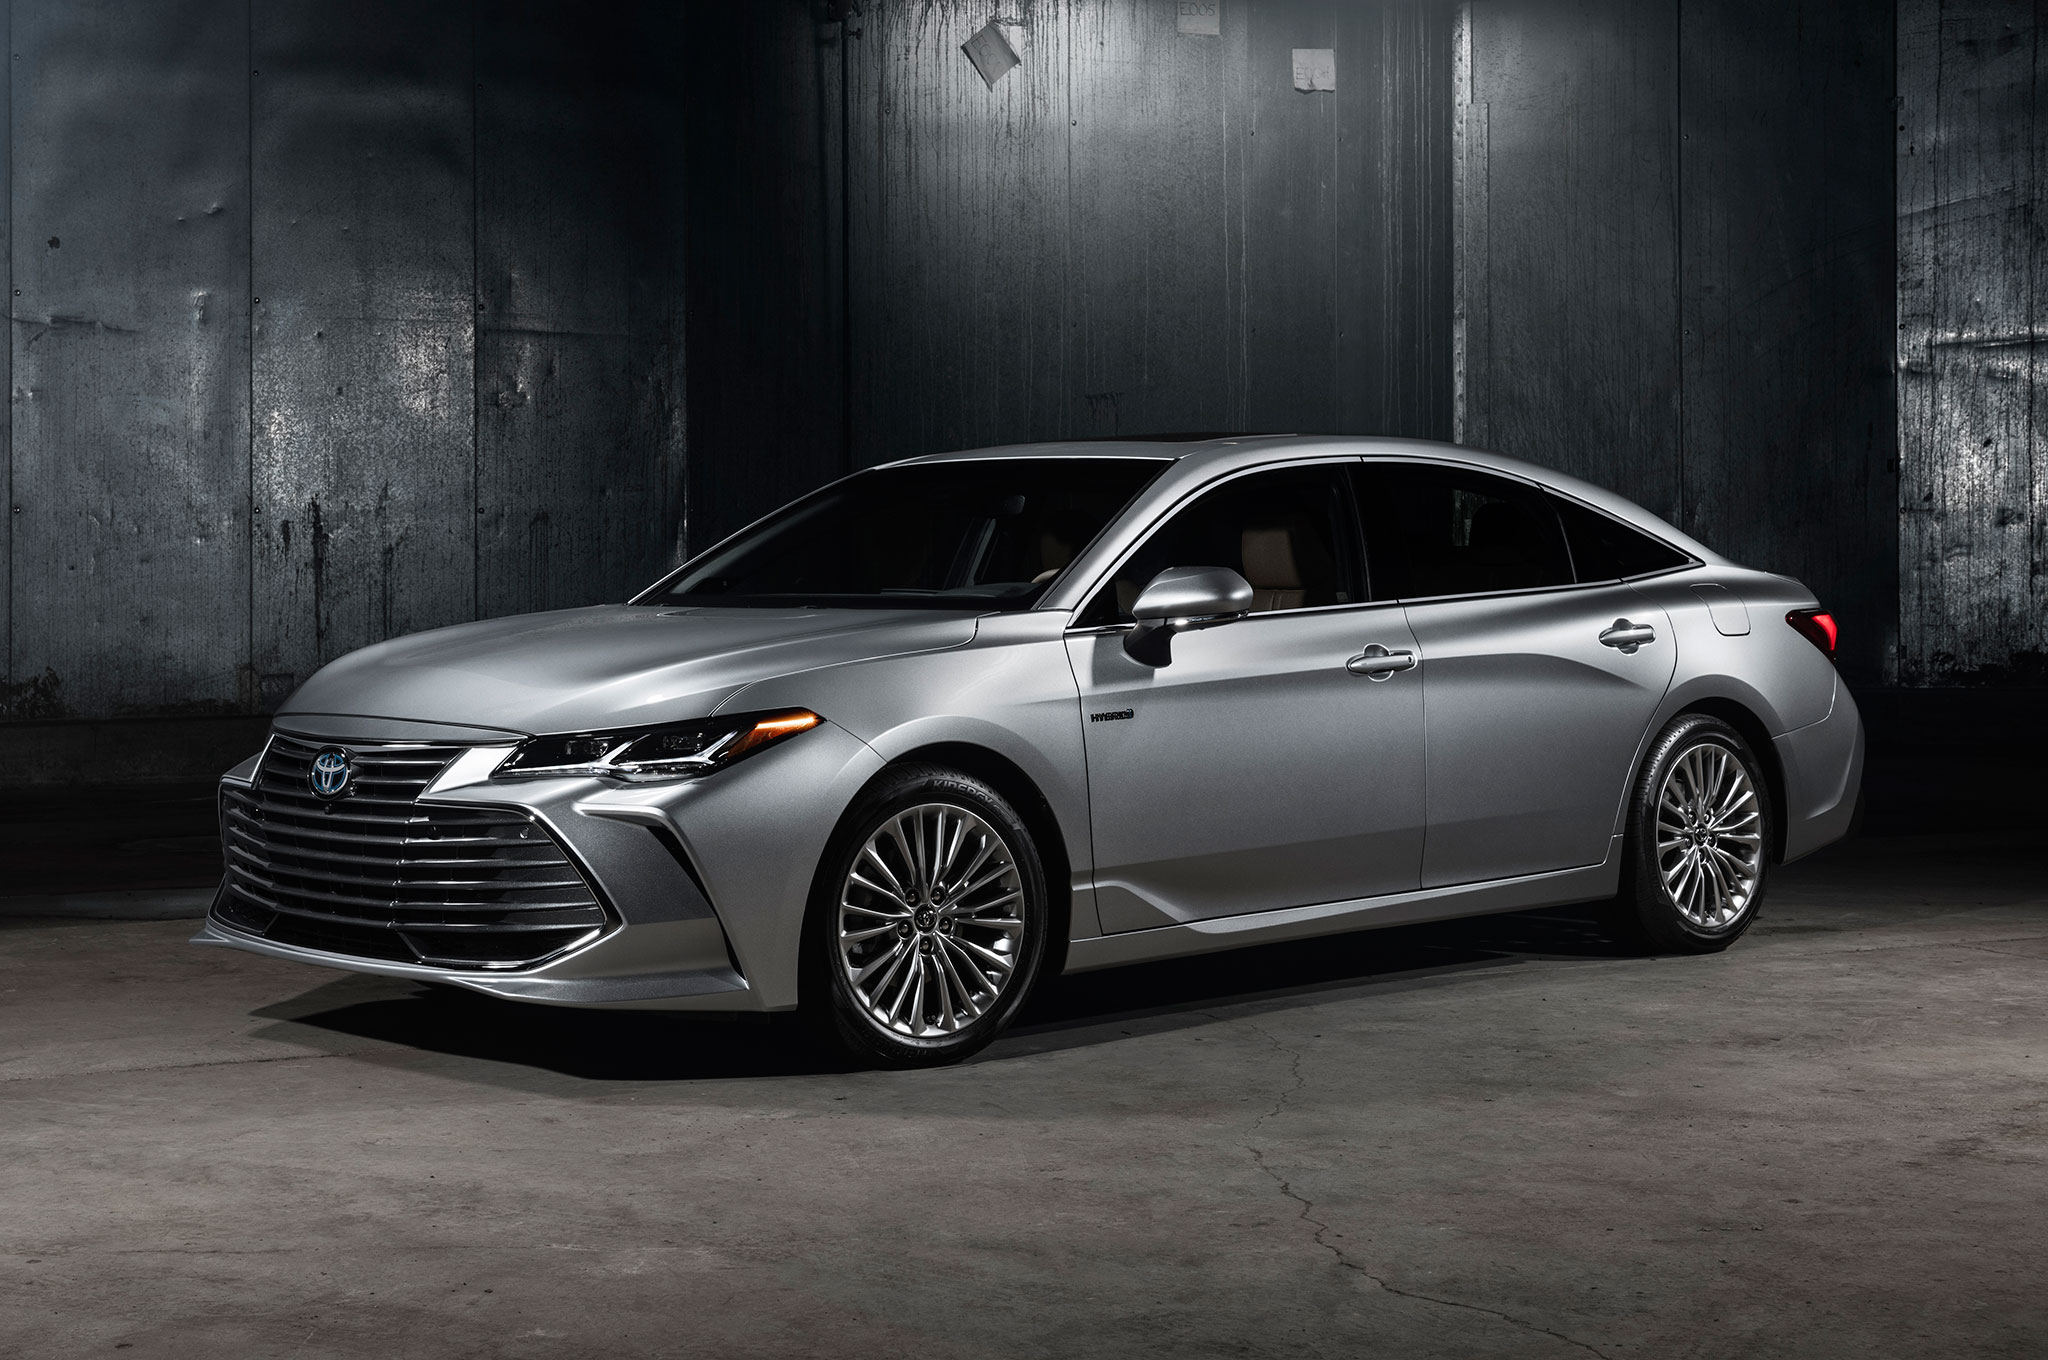 Toyota Avalon's aggressive new style pairs with safety and efficiency